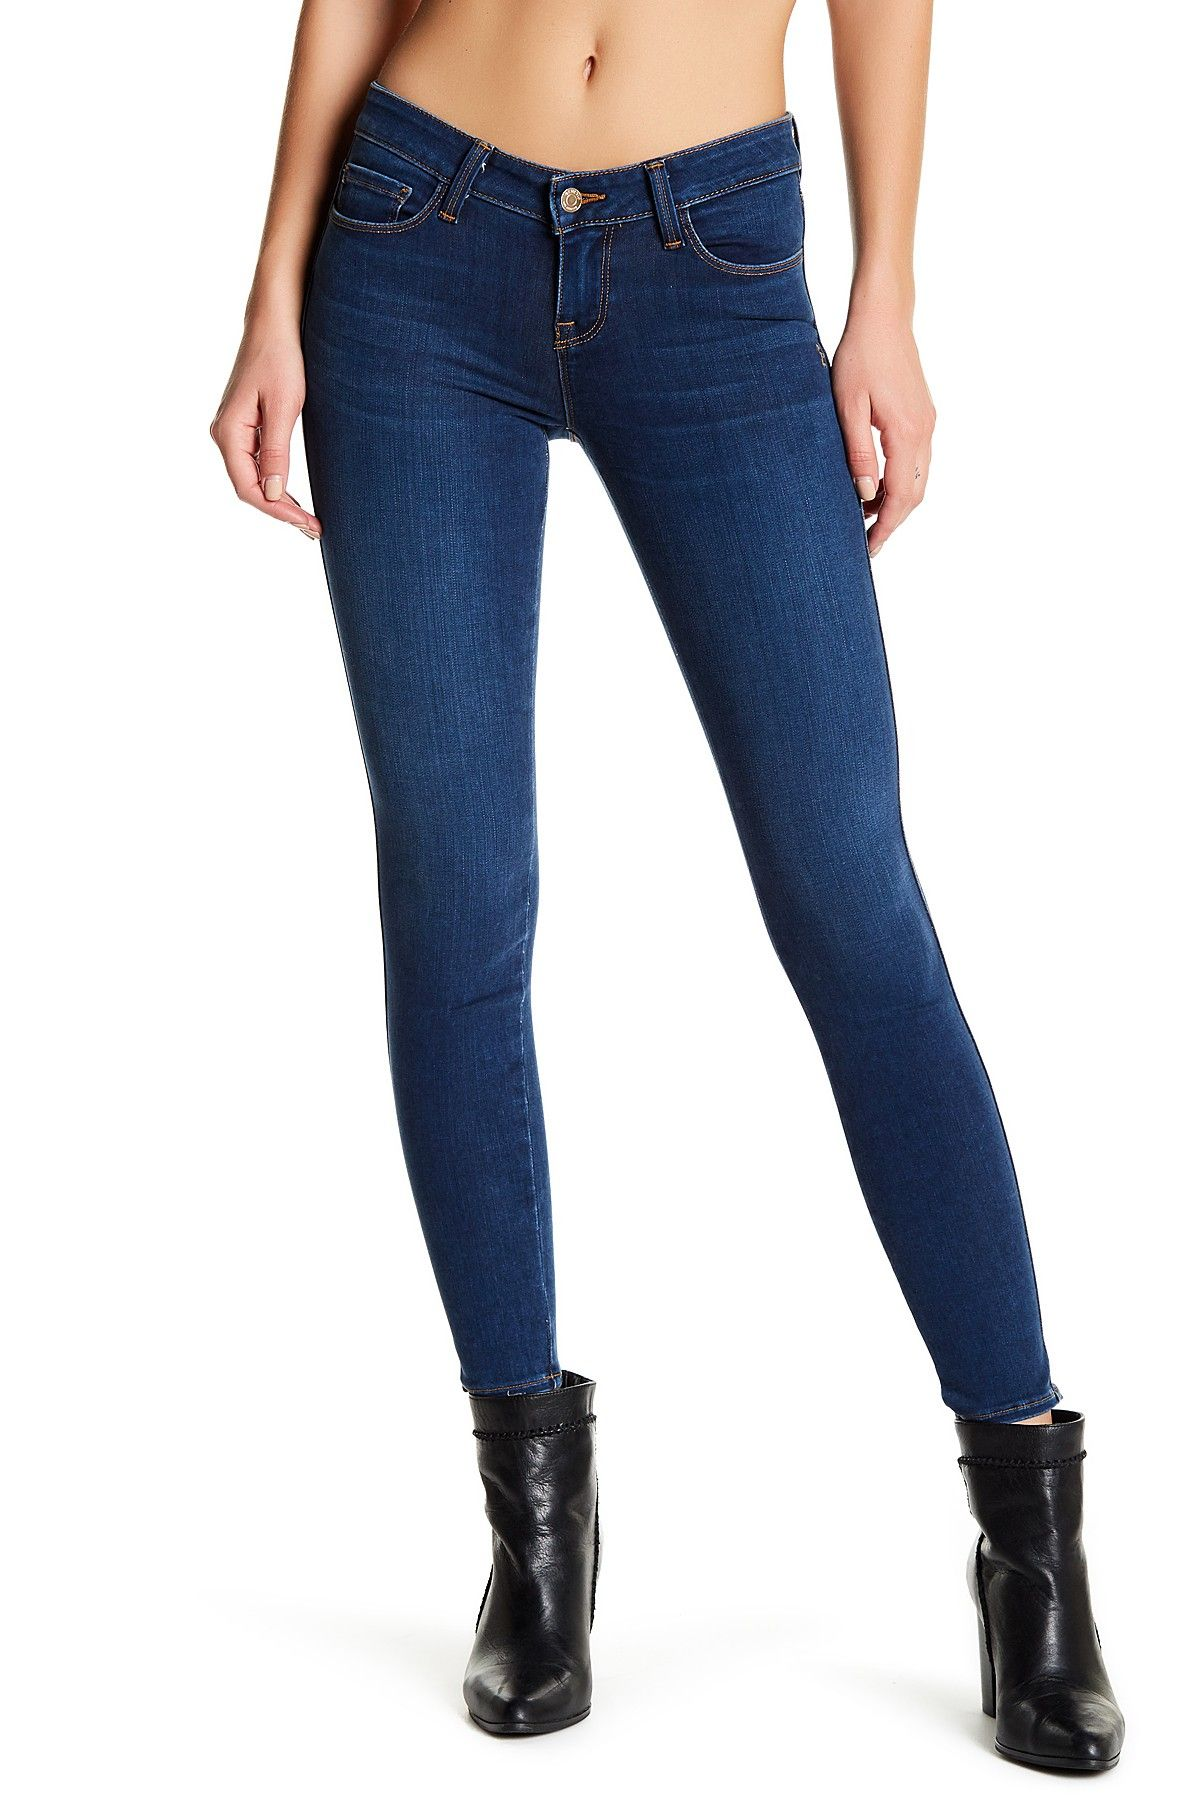 Fashion style High Crawford waist skinny jeans for woman